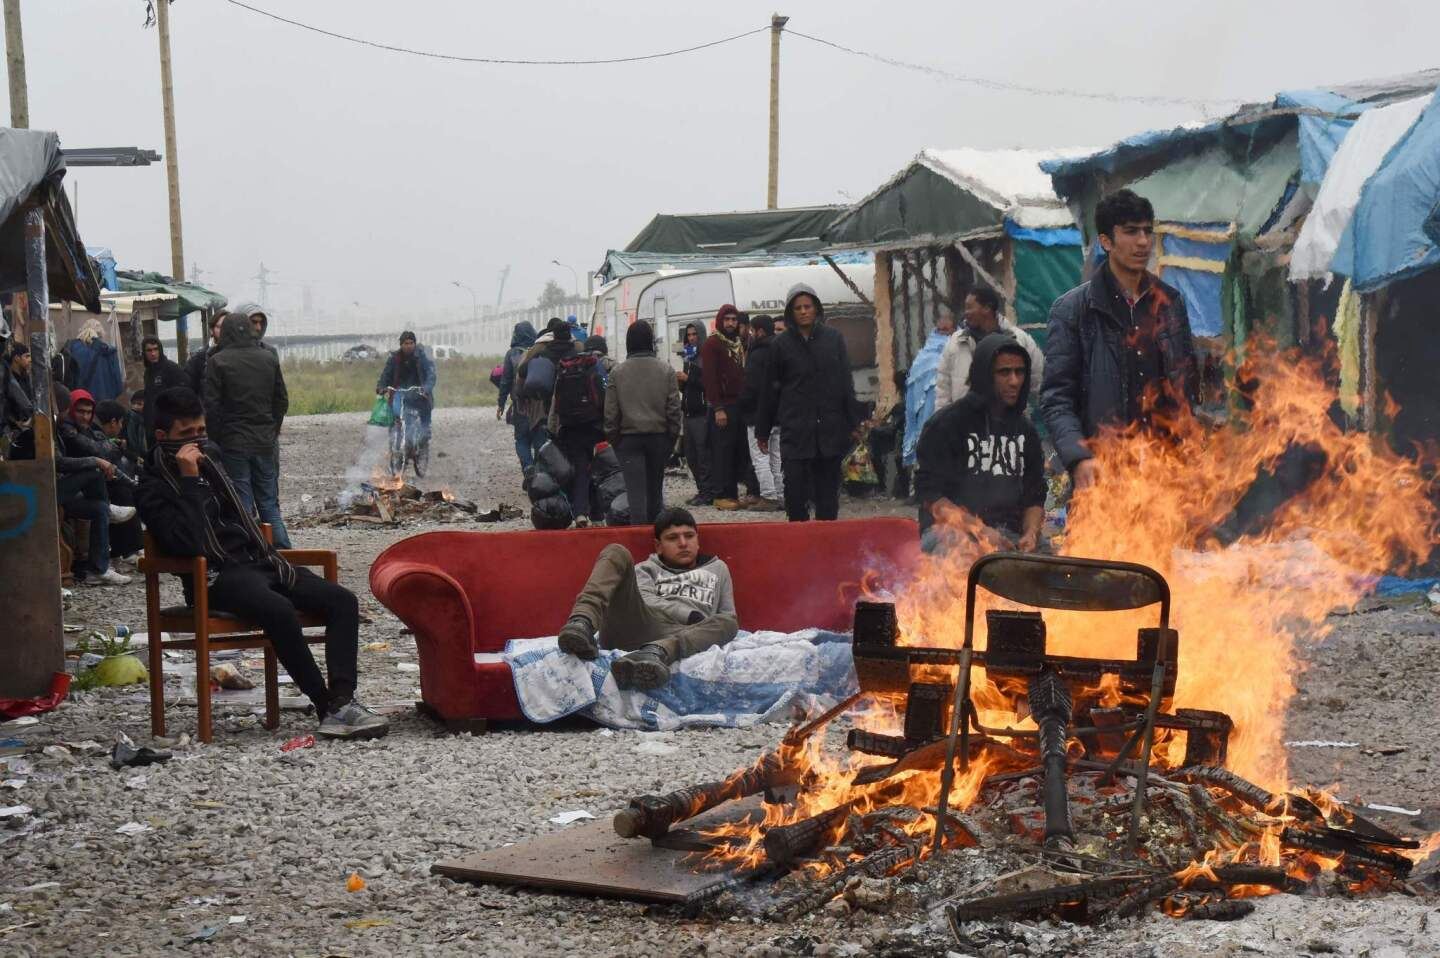 """Migrants gather by their tents and a bonfire in a migrant camp known as """"the Jungle,"""" in Calais, France, before an operation to clear the camp of its estimated 6,000 to 8,000 occupants."""